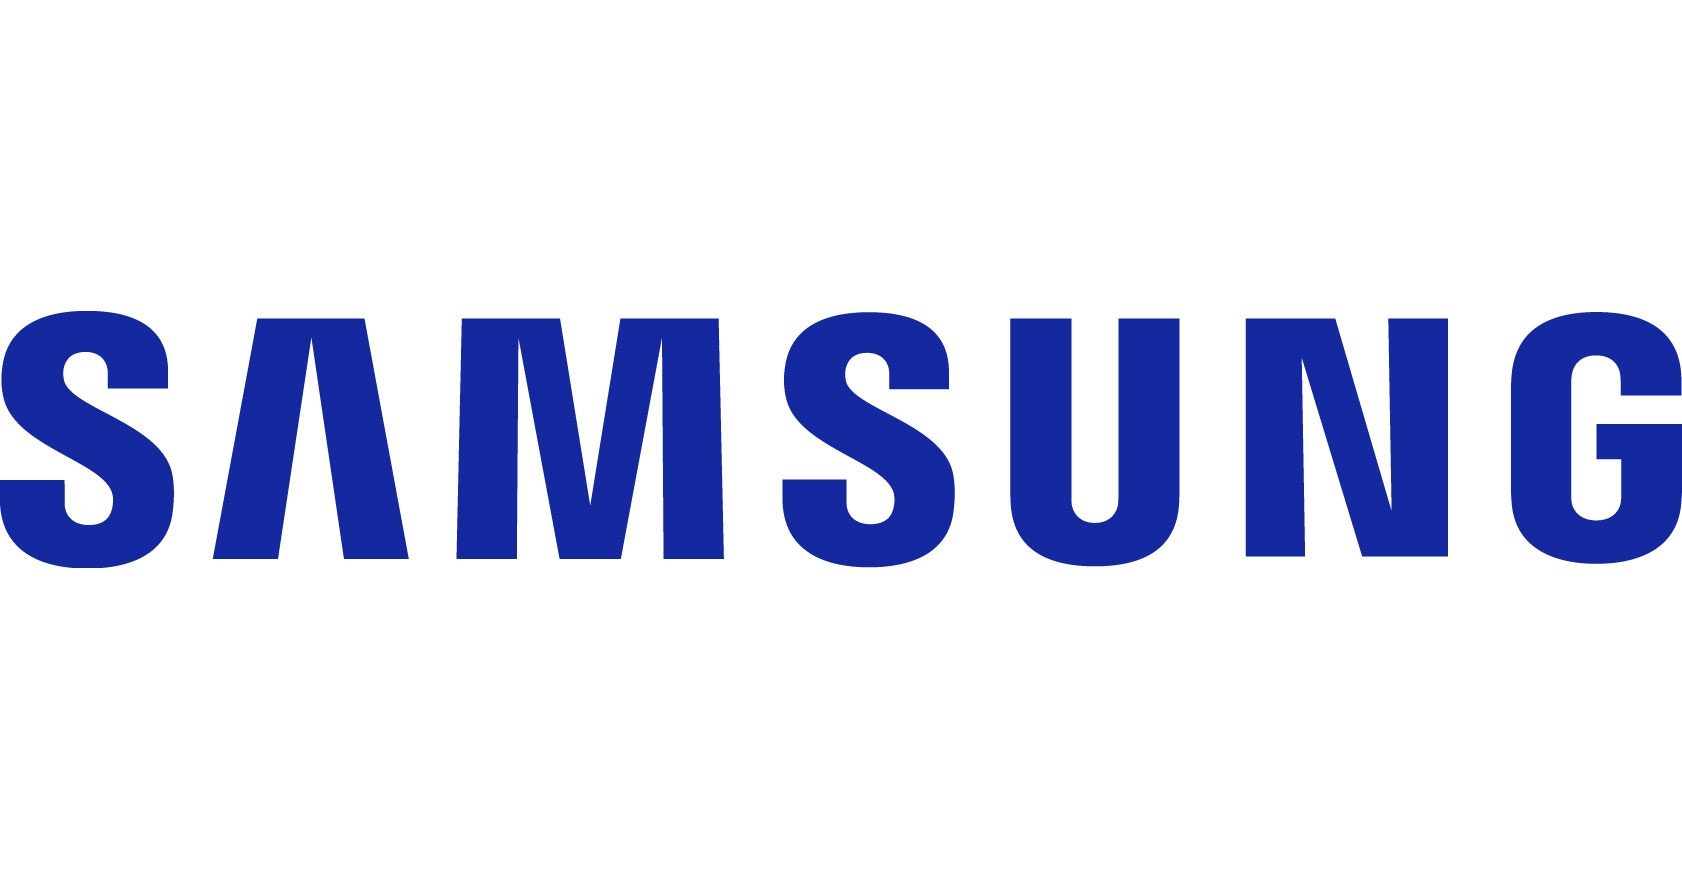 samsung logo history in q major